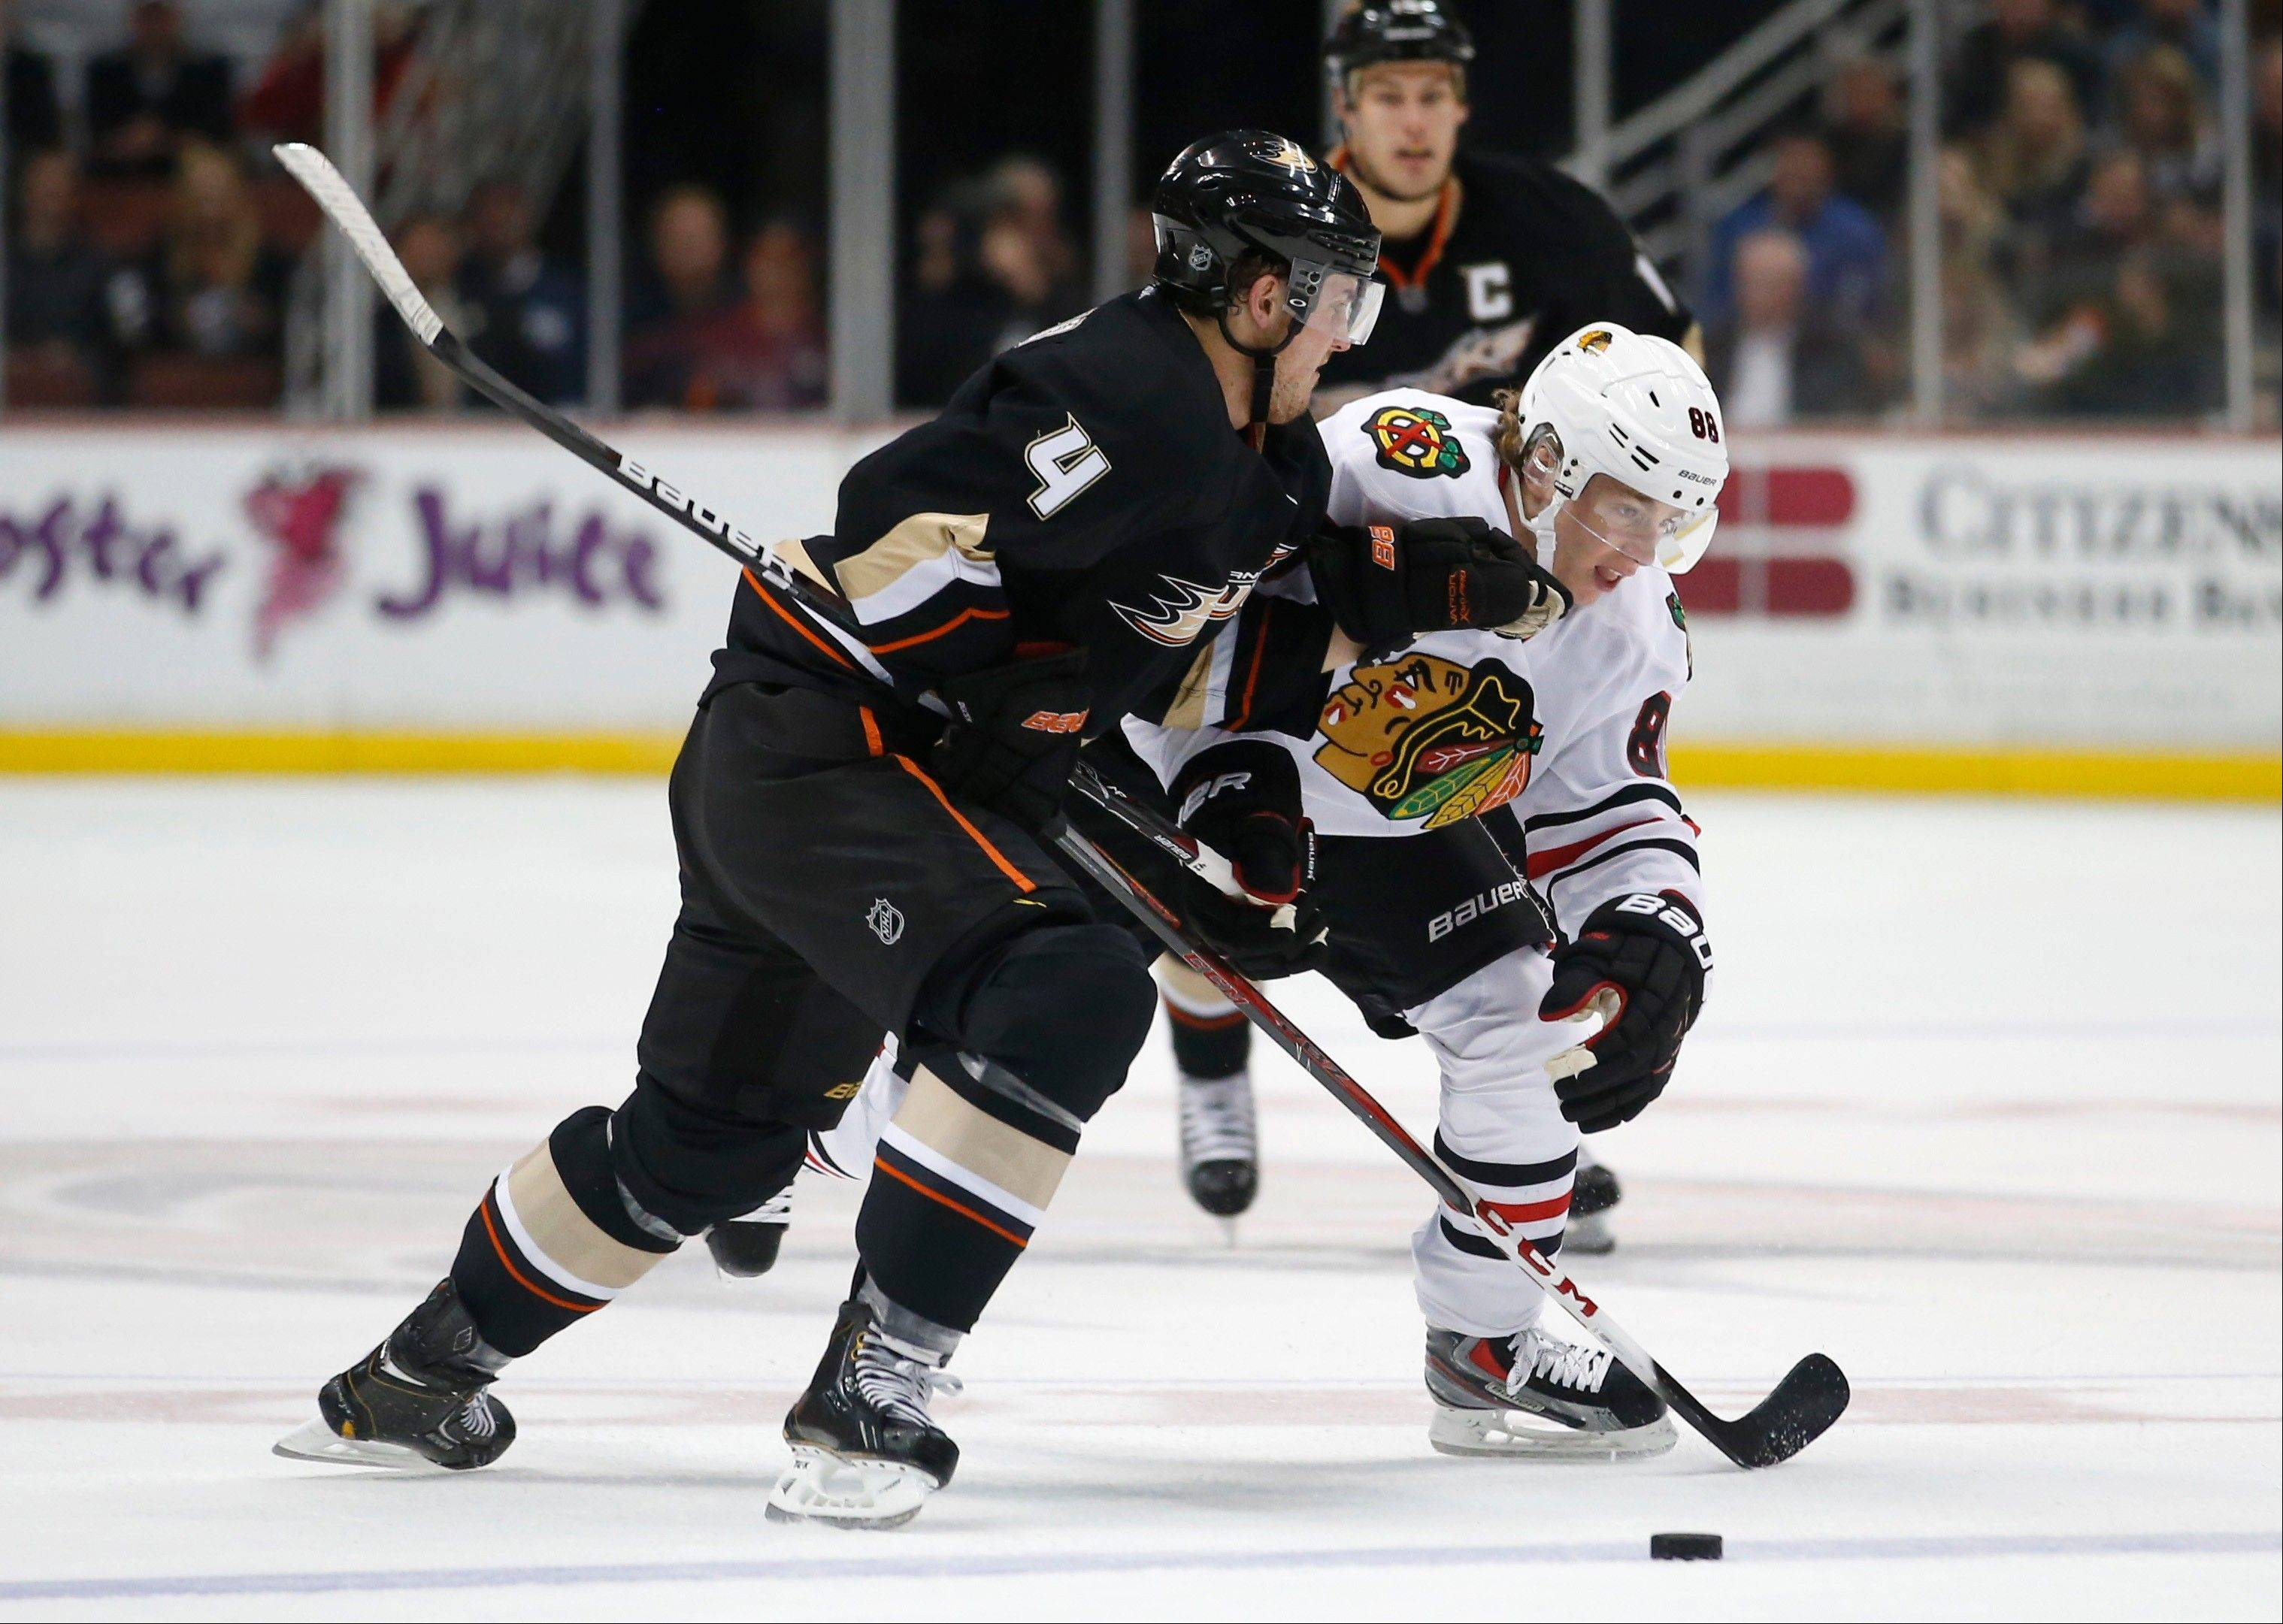 With Marian Hossa out with an injury, Patrick Kane, right, logged more than 25 minutes and 32 shifts against Anaheim on Wednesday.